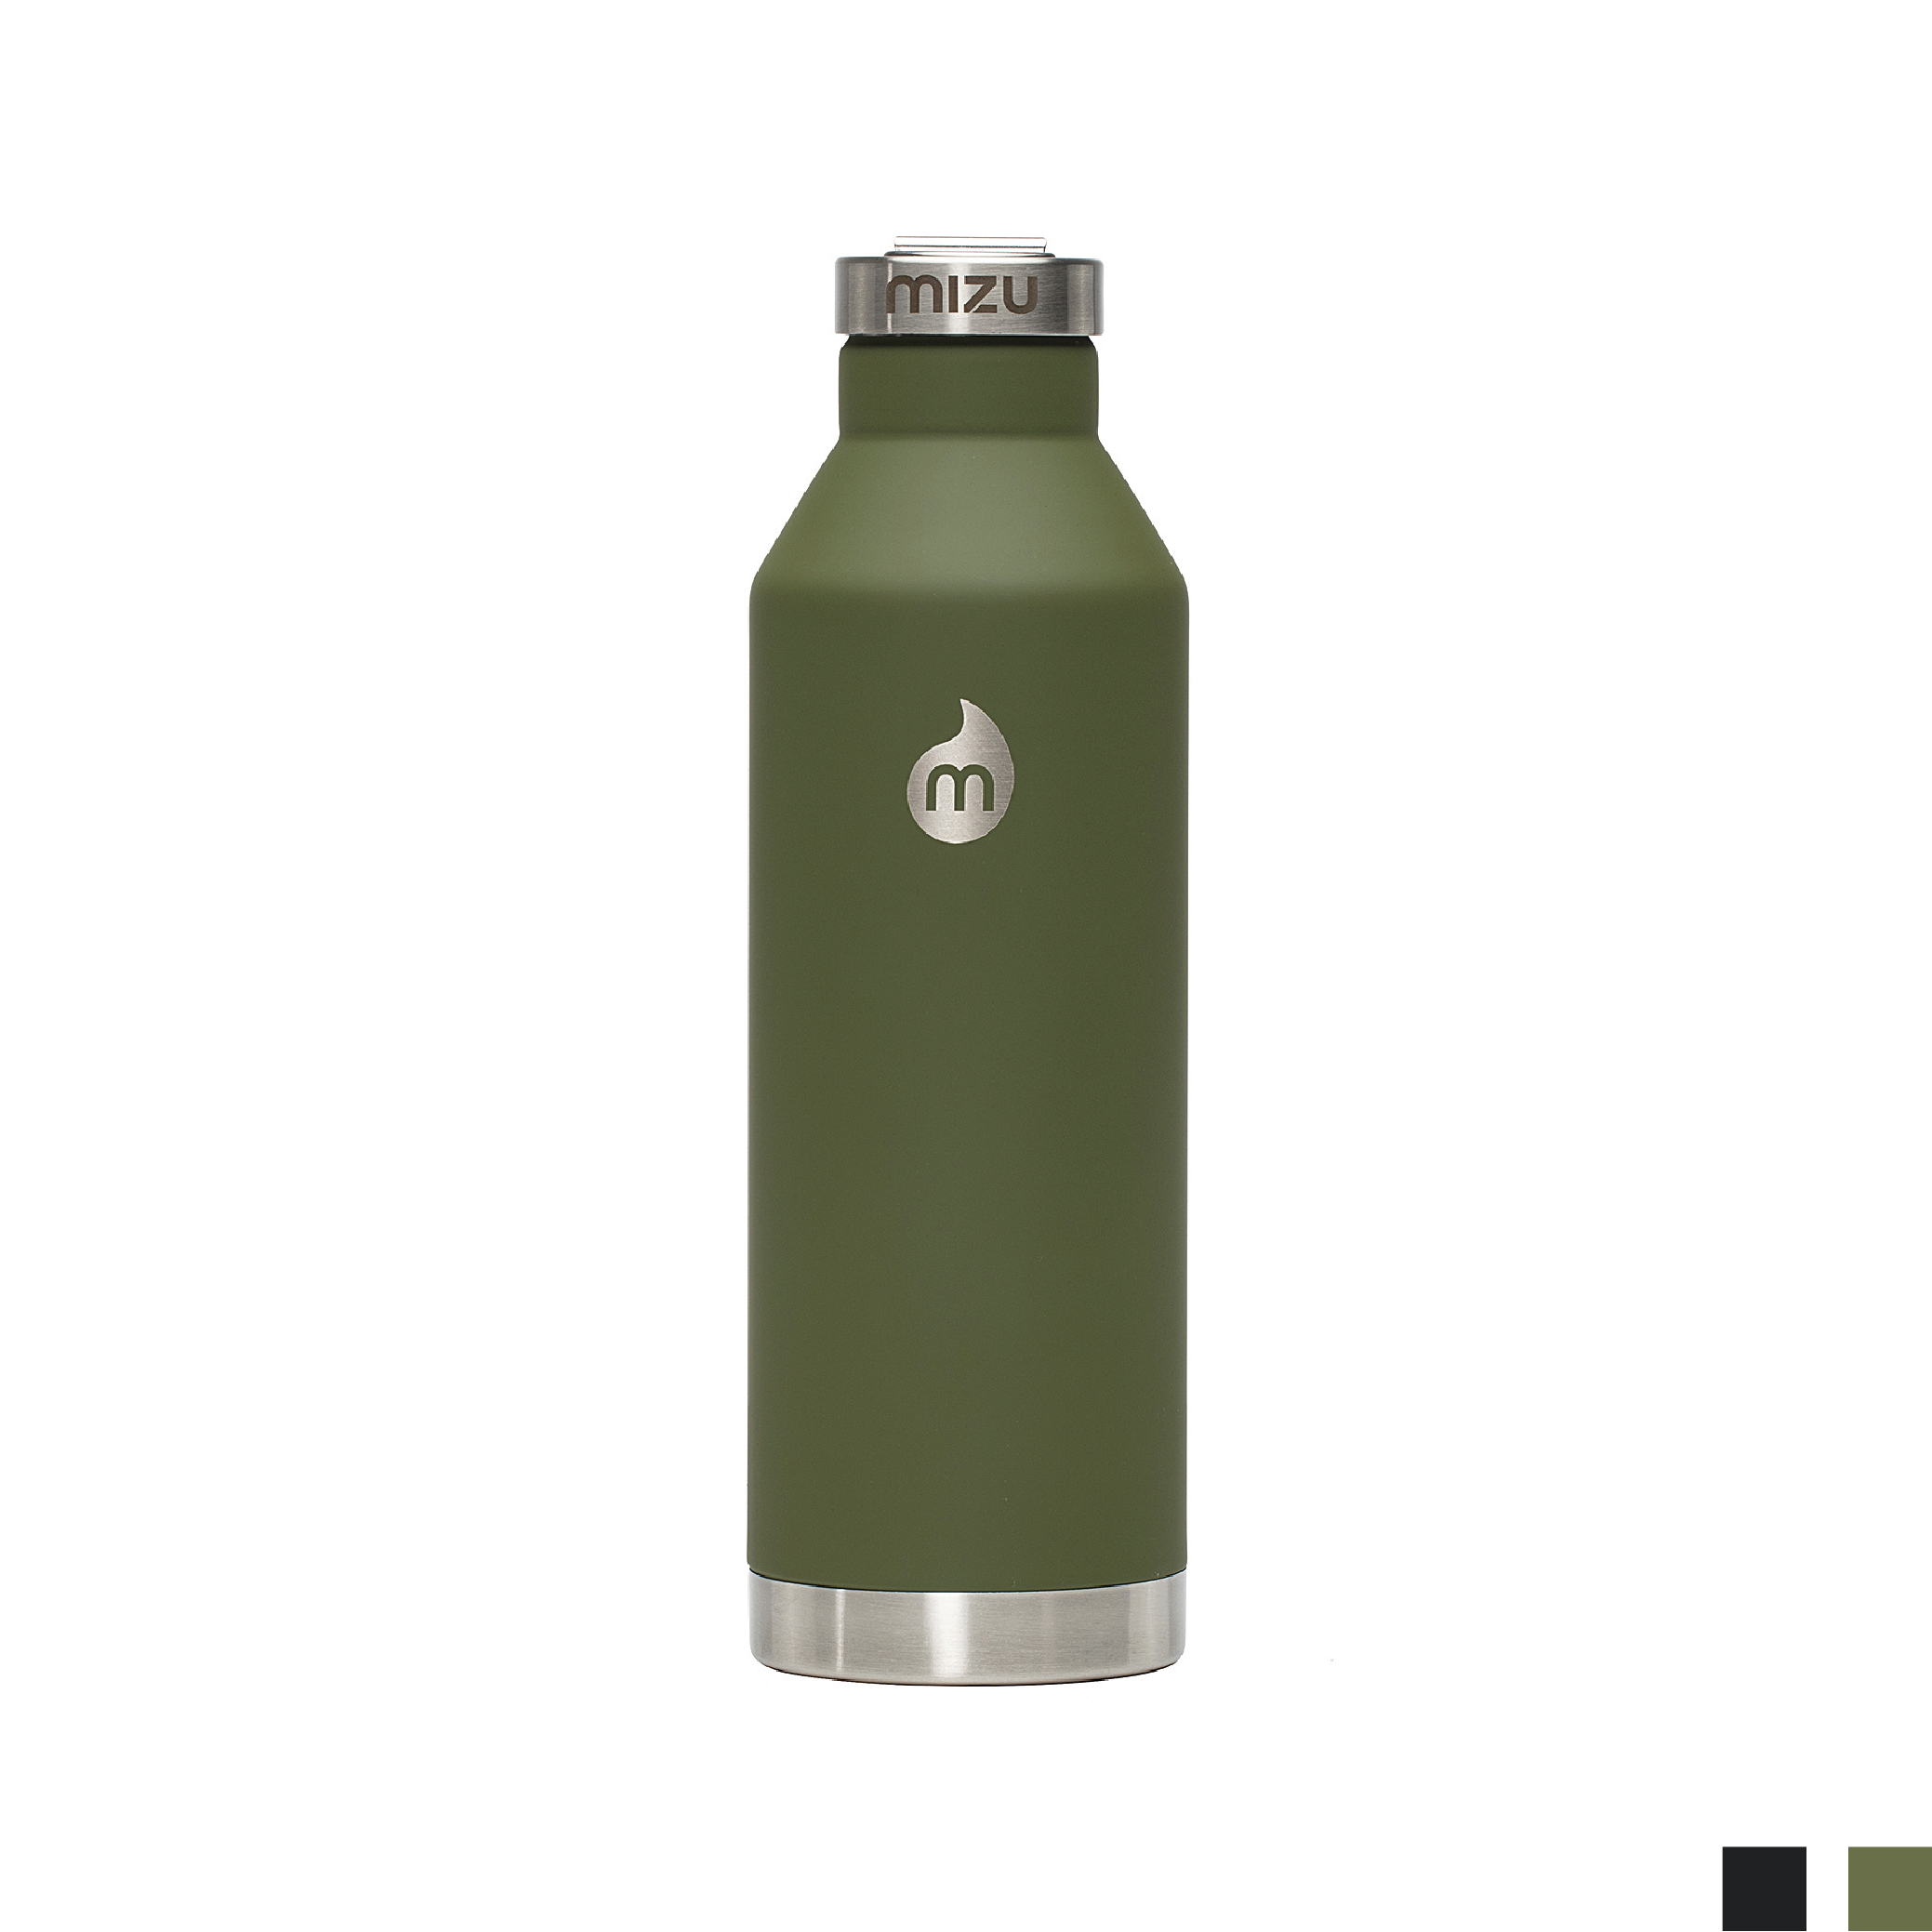 V8    By  Mizu Life     The perfectly sized insulated bottle for when you need that extra hydration. It also fits 2 ½ beers for after work.    SHOP NOW          £28